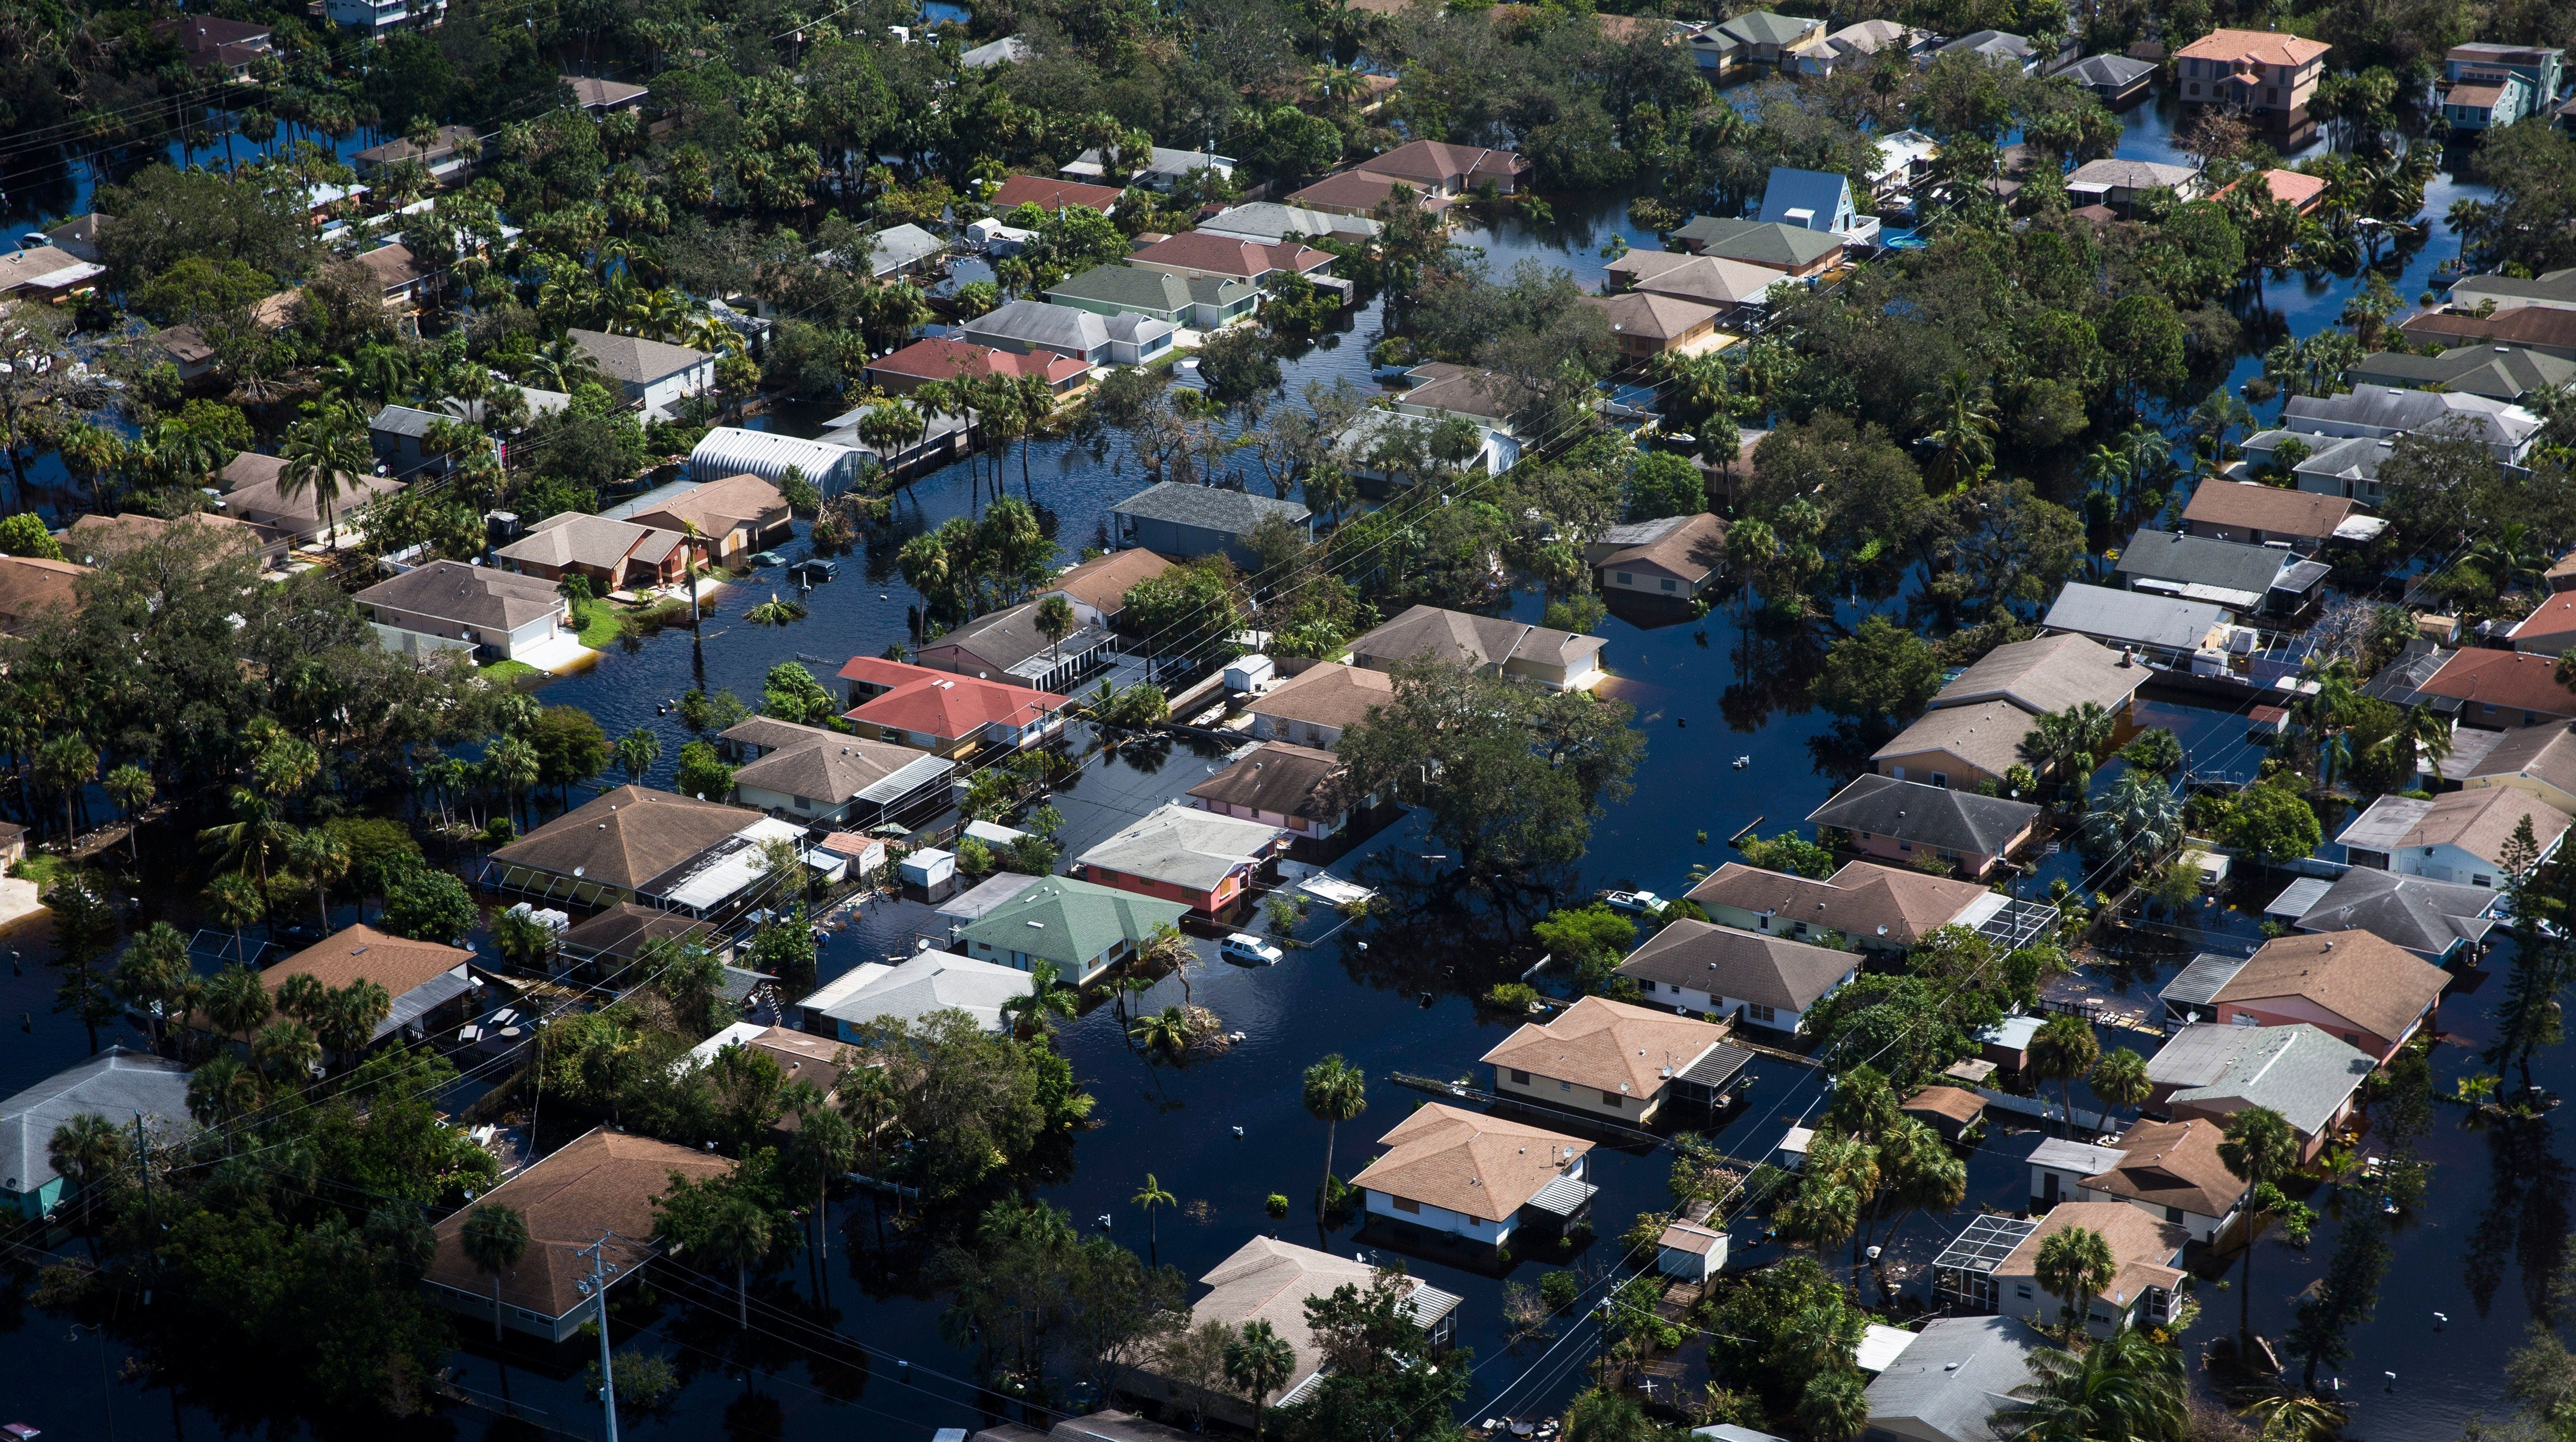 Hurricane Irma wake-up call on climate change for many Southwest Floridians, new Conservancy of Southwest Florida survey shows